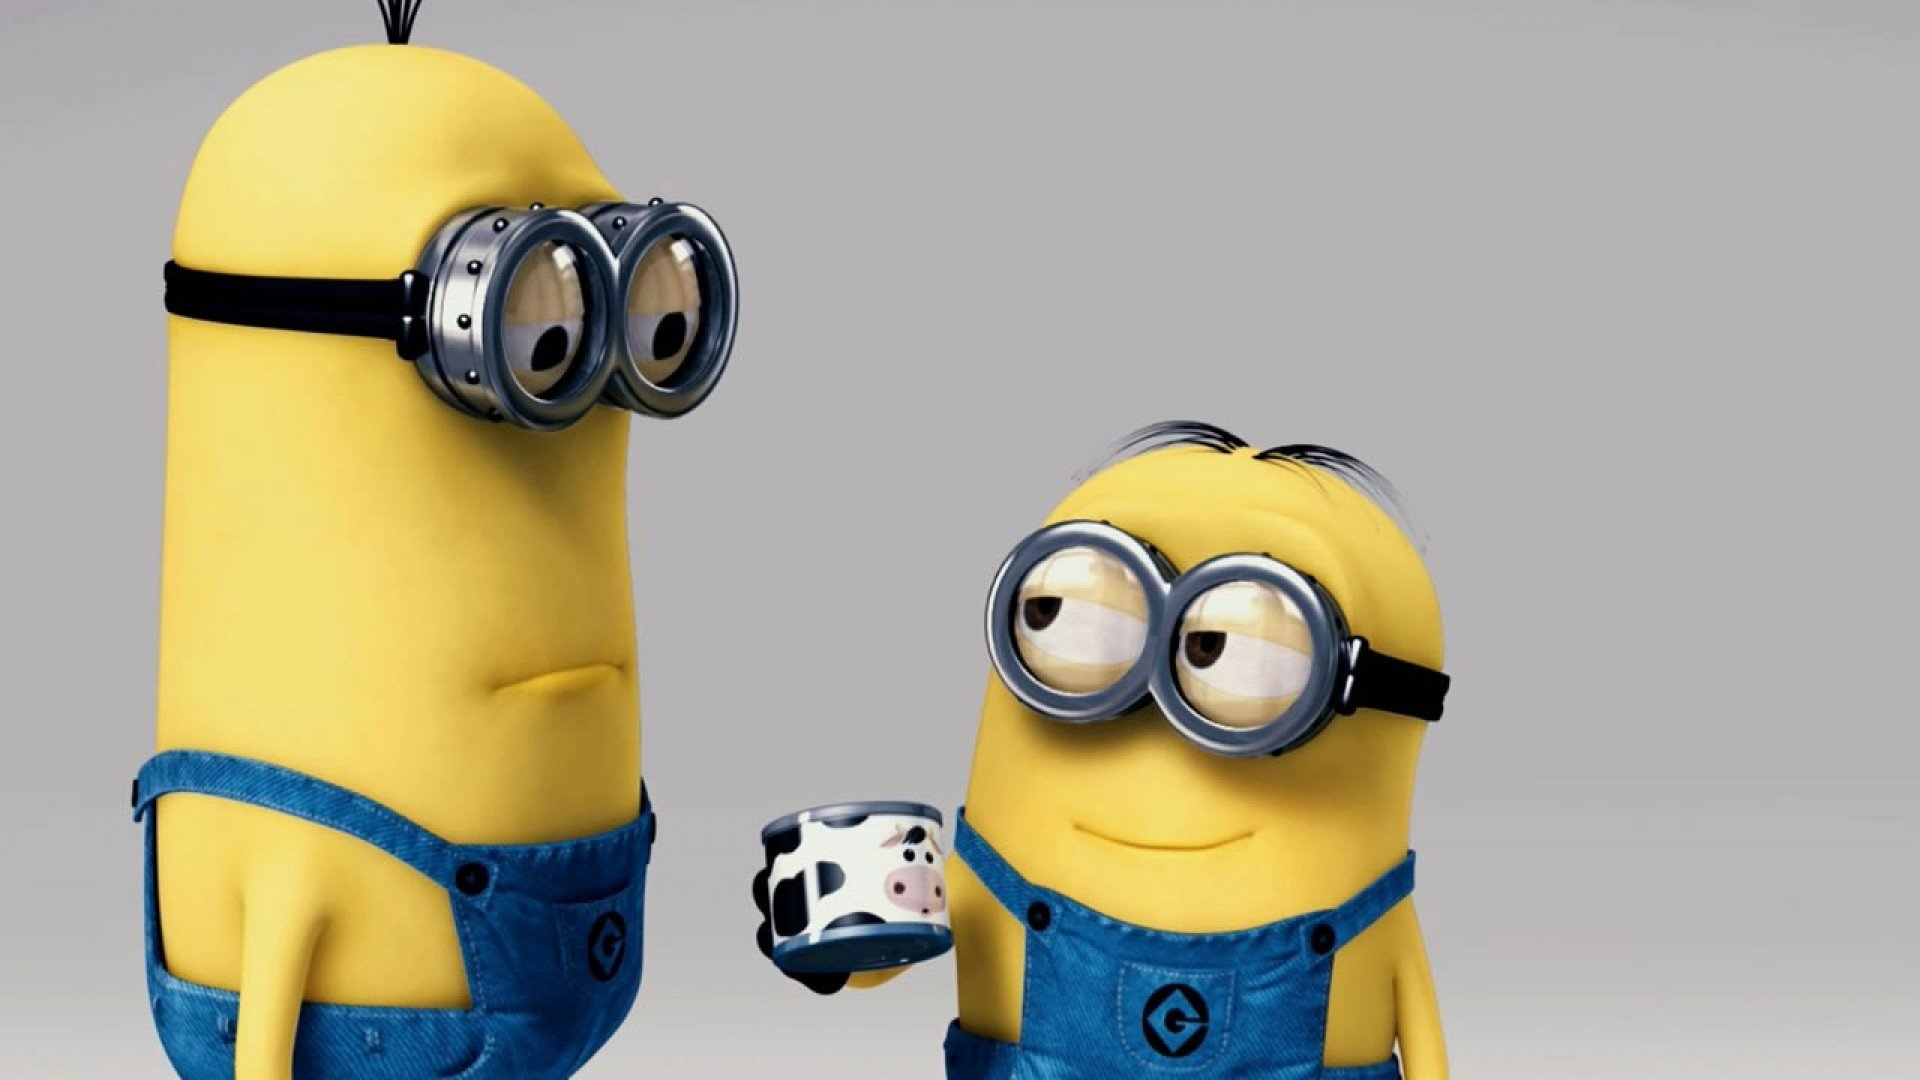 best-images-about-Minion-Mania-on-Pinterest-Funny-minion-wallpaper-wpc5802788